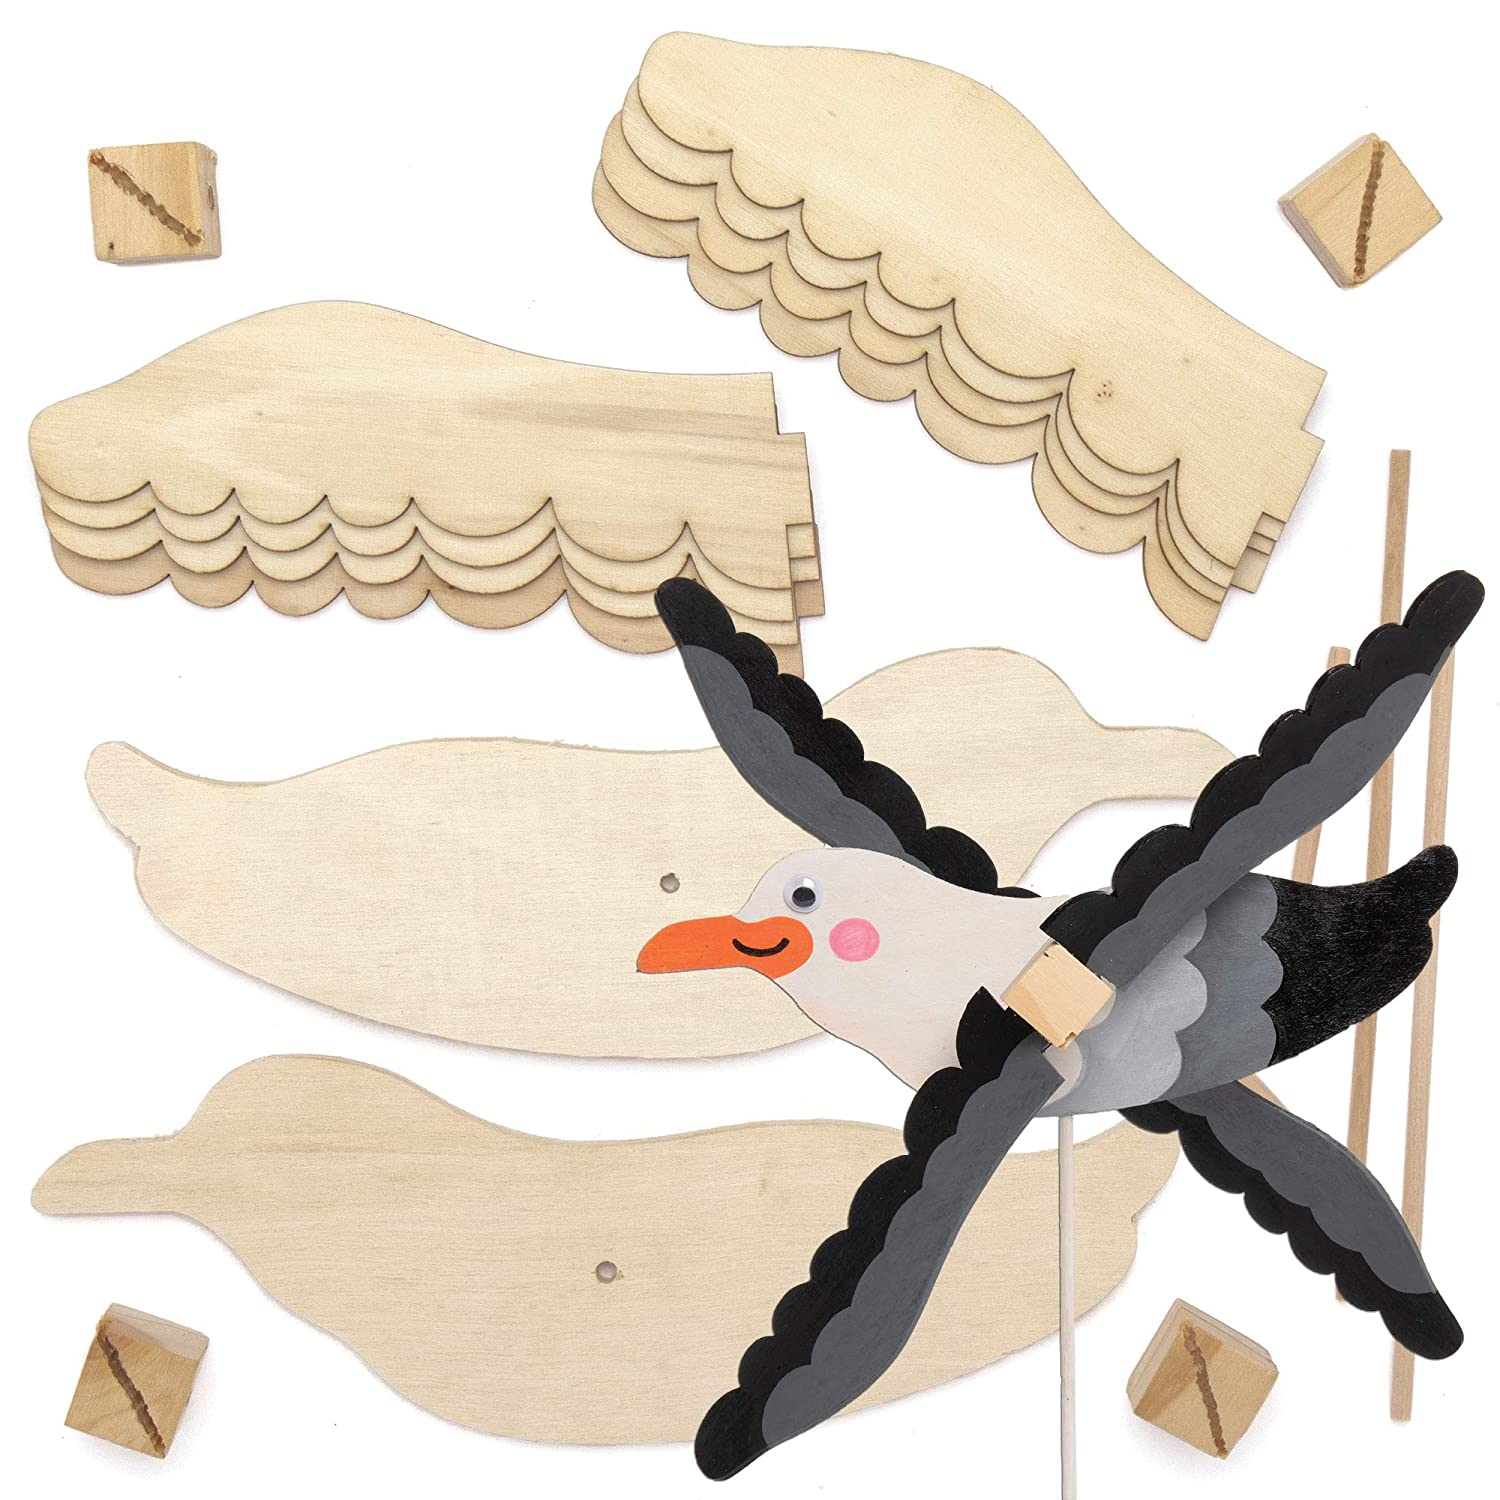 Baker Ross AT839 Seagull Wooden Windmill Kits - Pack of 2, for Kids Arts and Crafts Projects